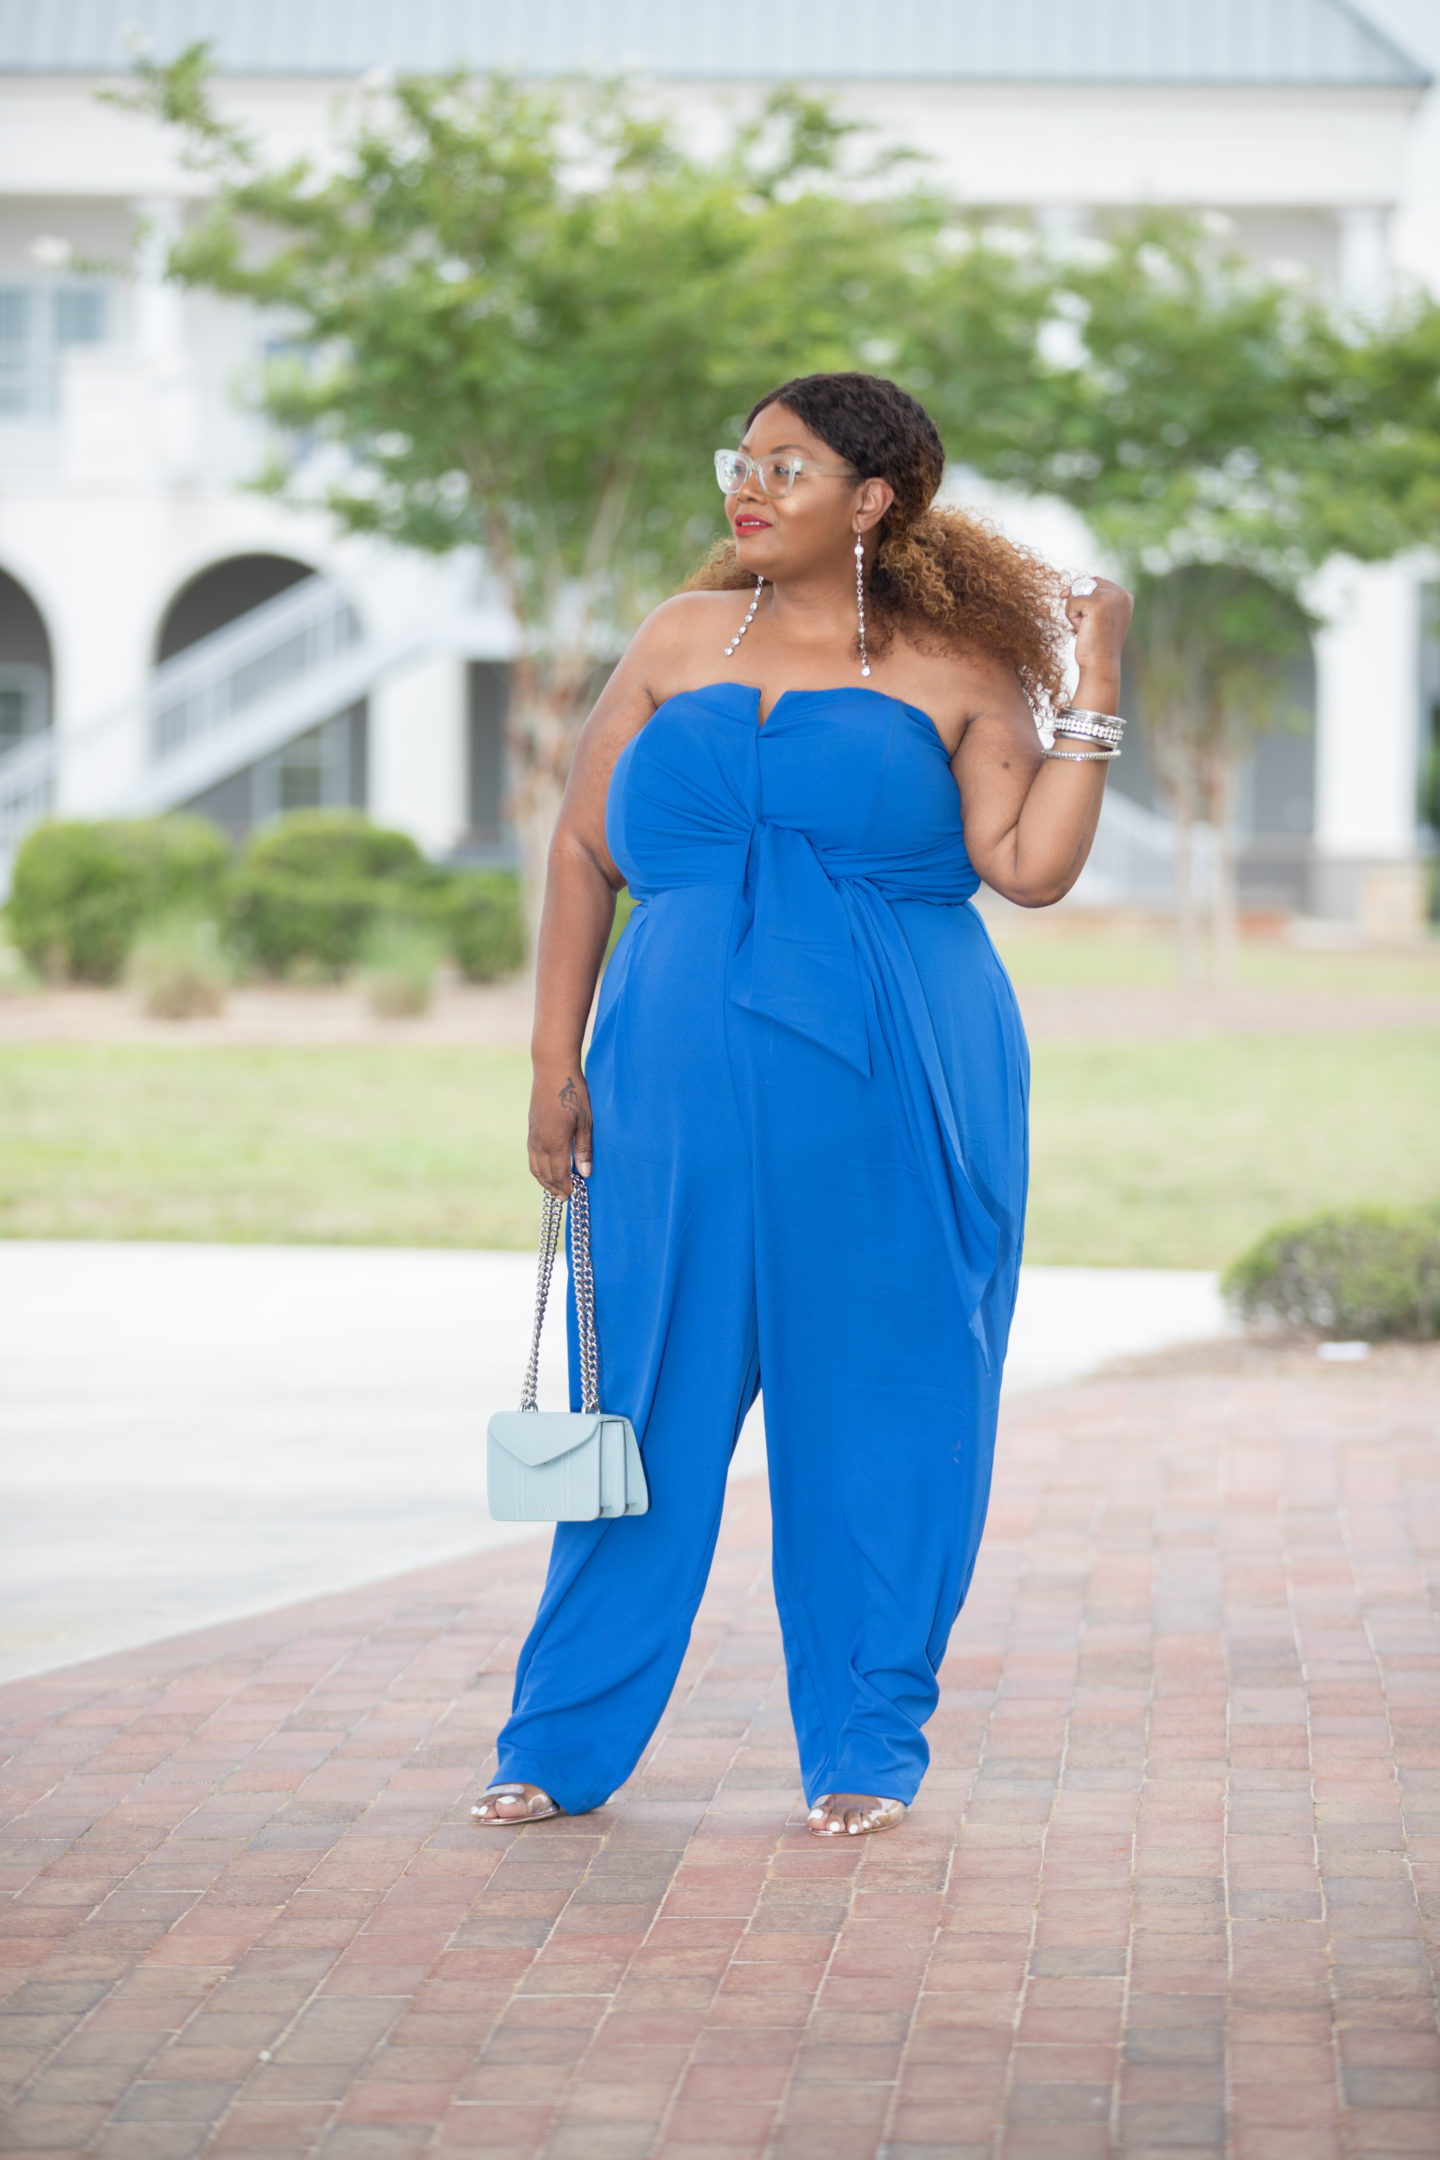 Plus size style inspiration by writer Maui Bigelow